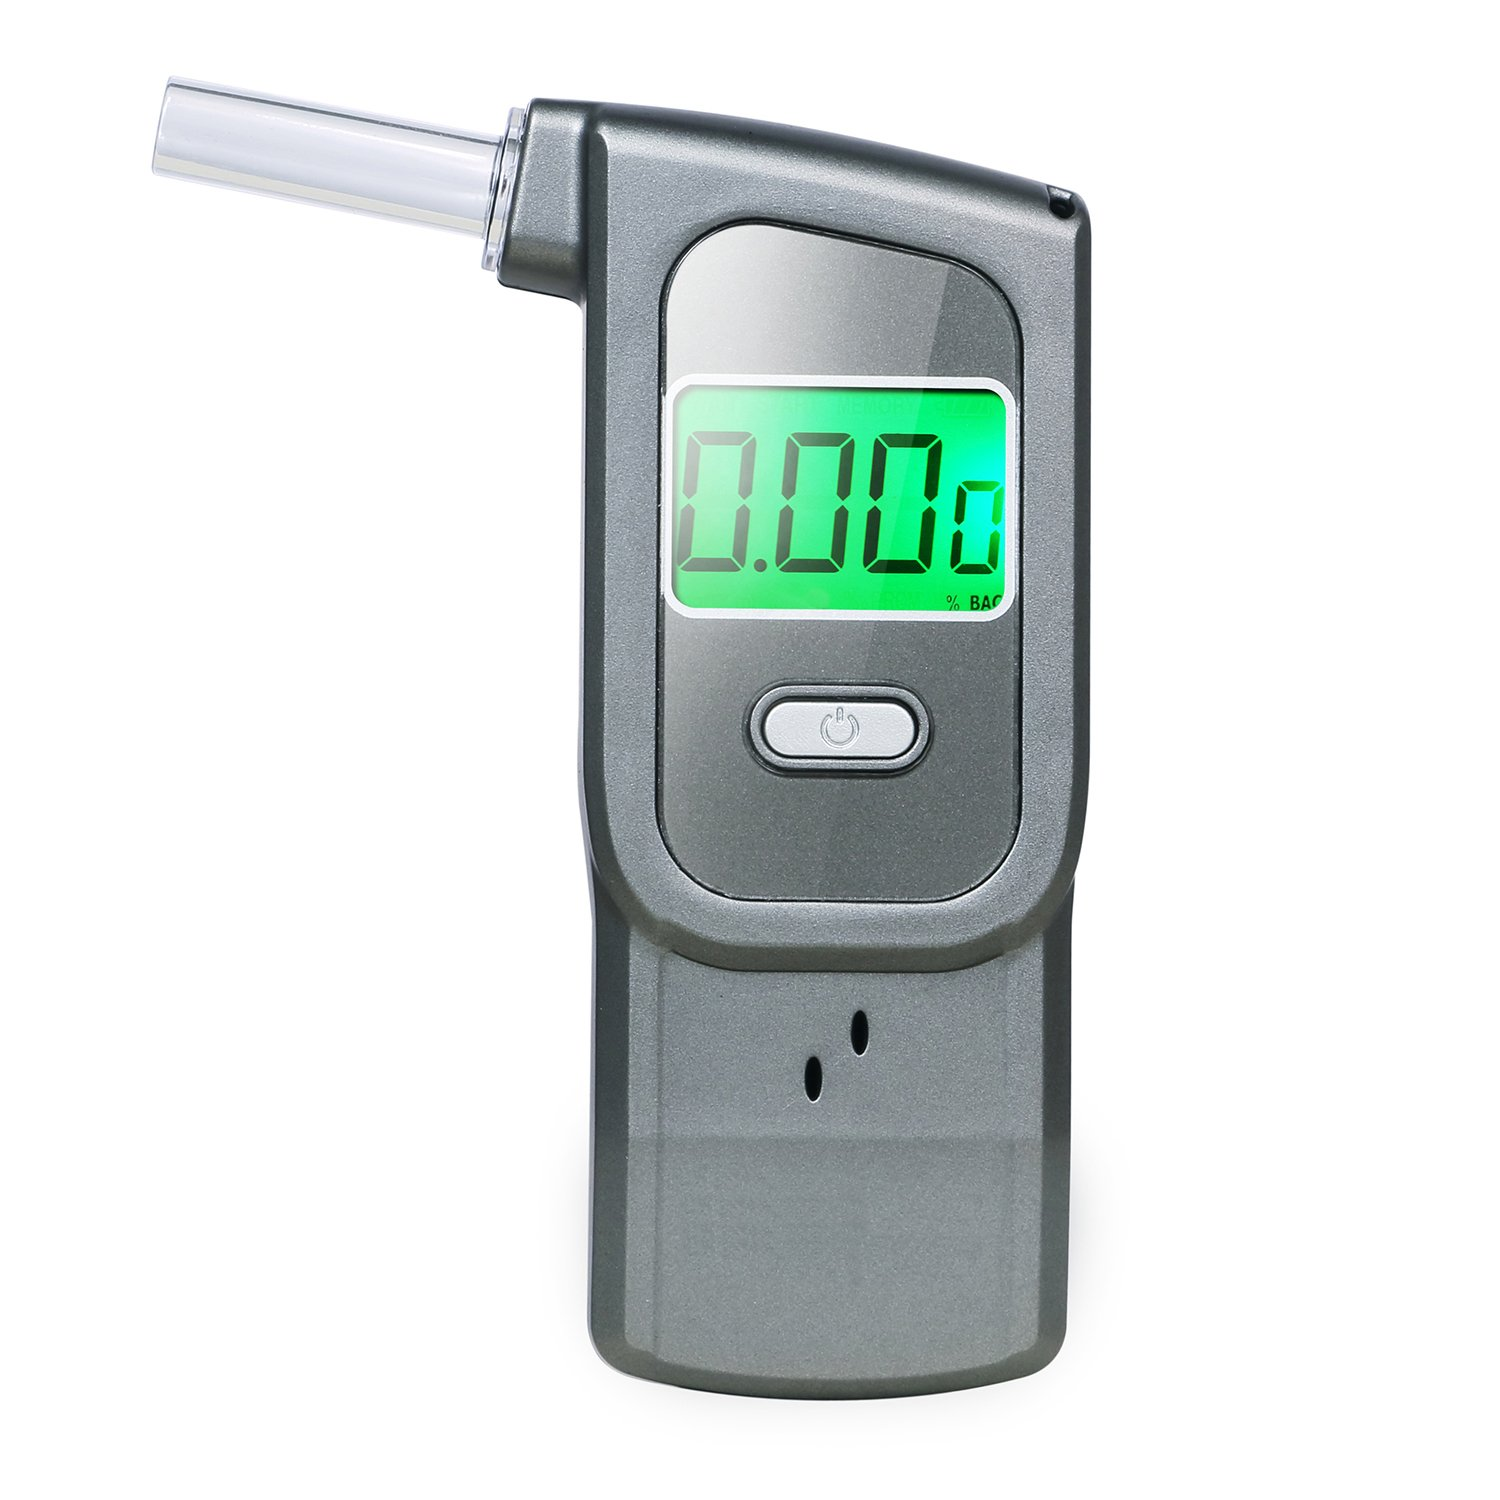 Breathalyzer Portable Digital Breath Alcohol Tester for Personal Use